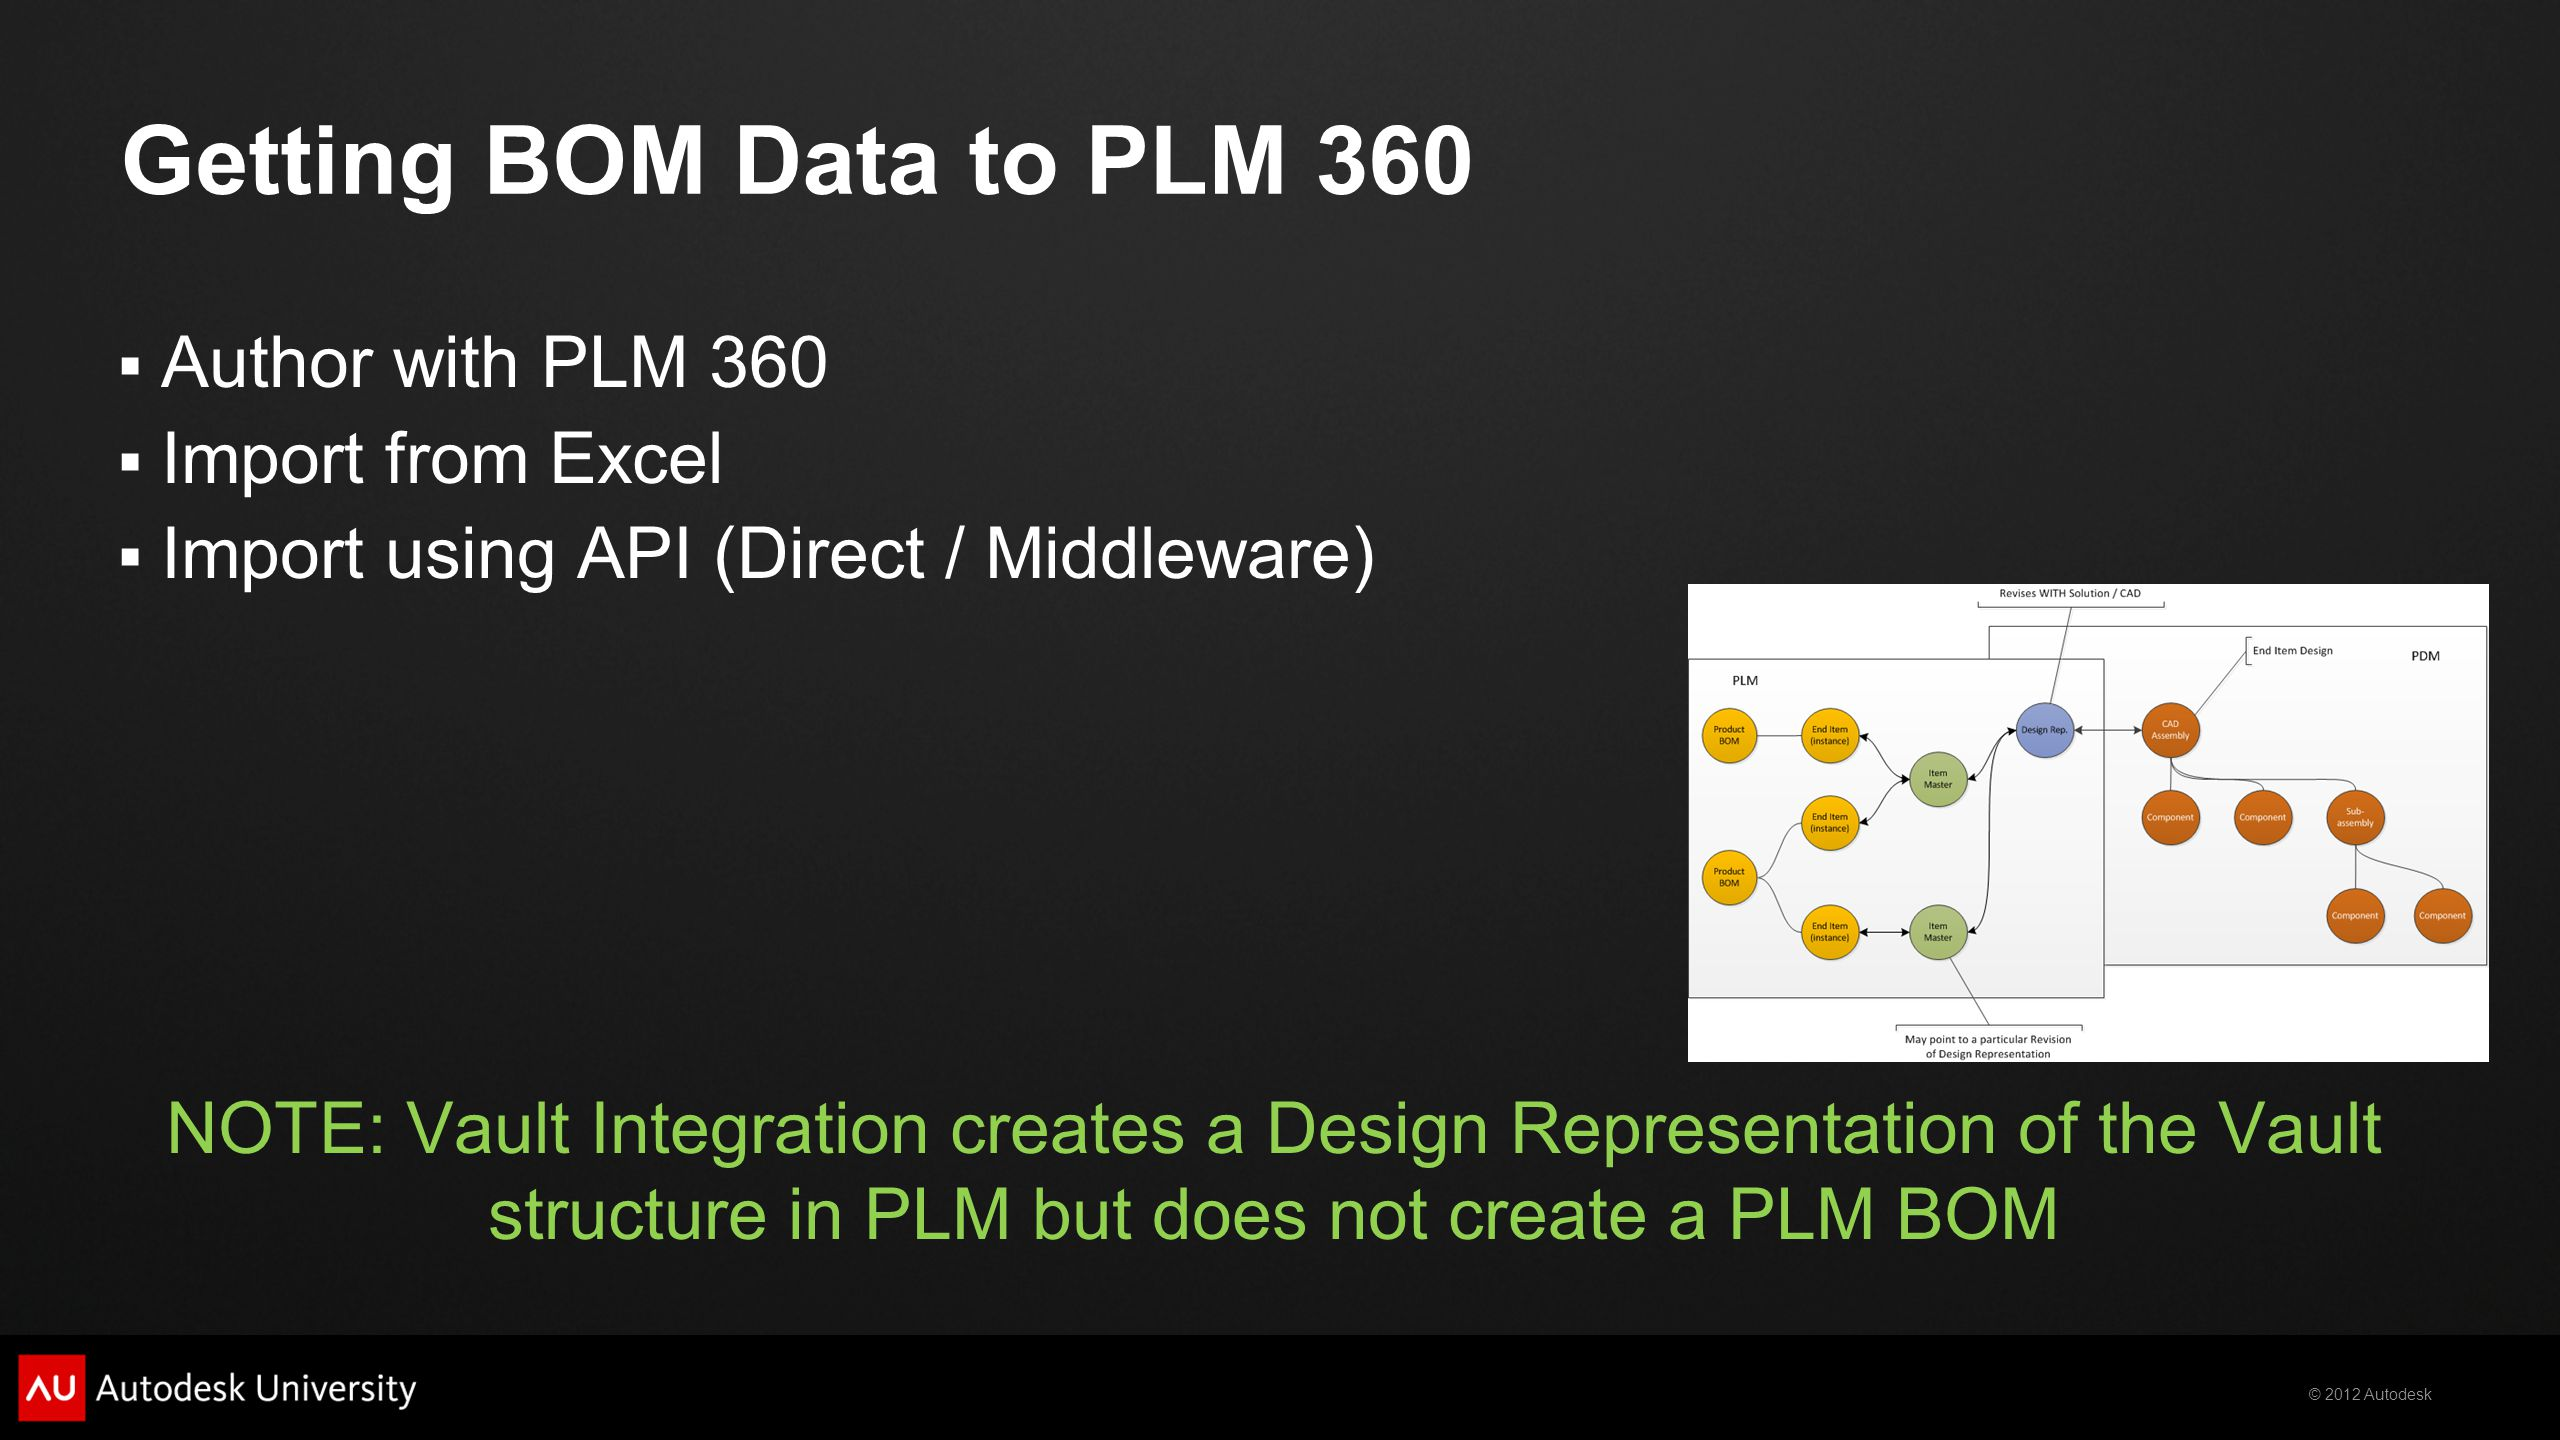 © 2012 Autodesk Getting BOM Data to PLM 360 Author with PLM 360 Import from Excel Import using API (Direct / Middleware) NOTE: Vault Integration creates a Design Representation of the Vault structure in PLM but does not create a PLM BOM